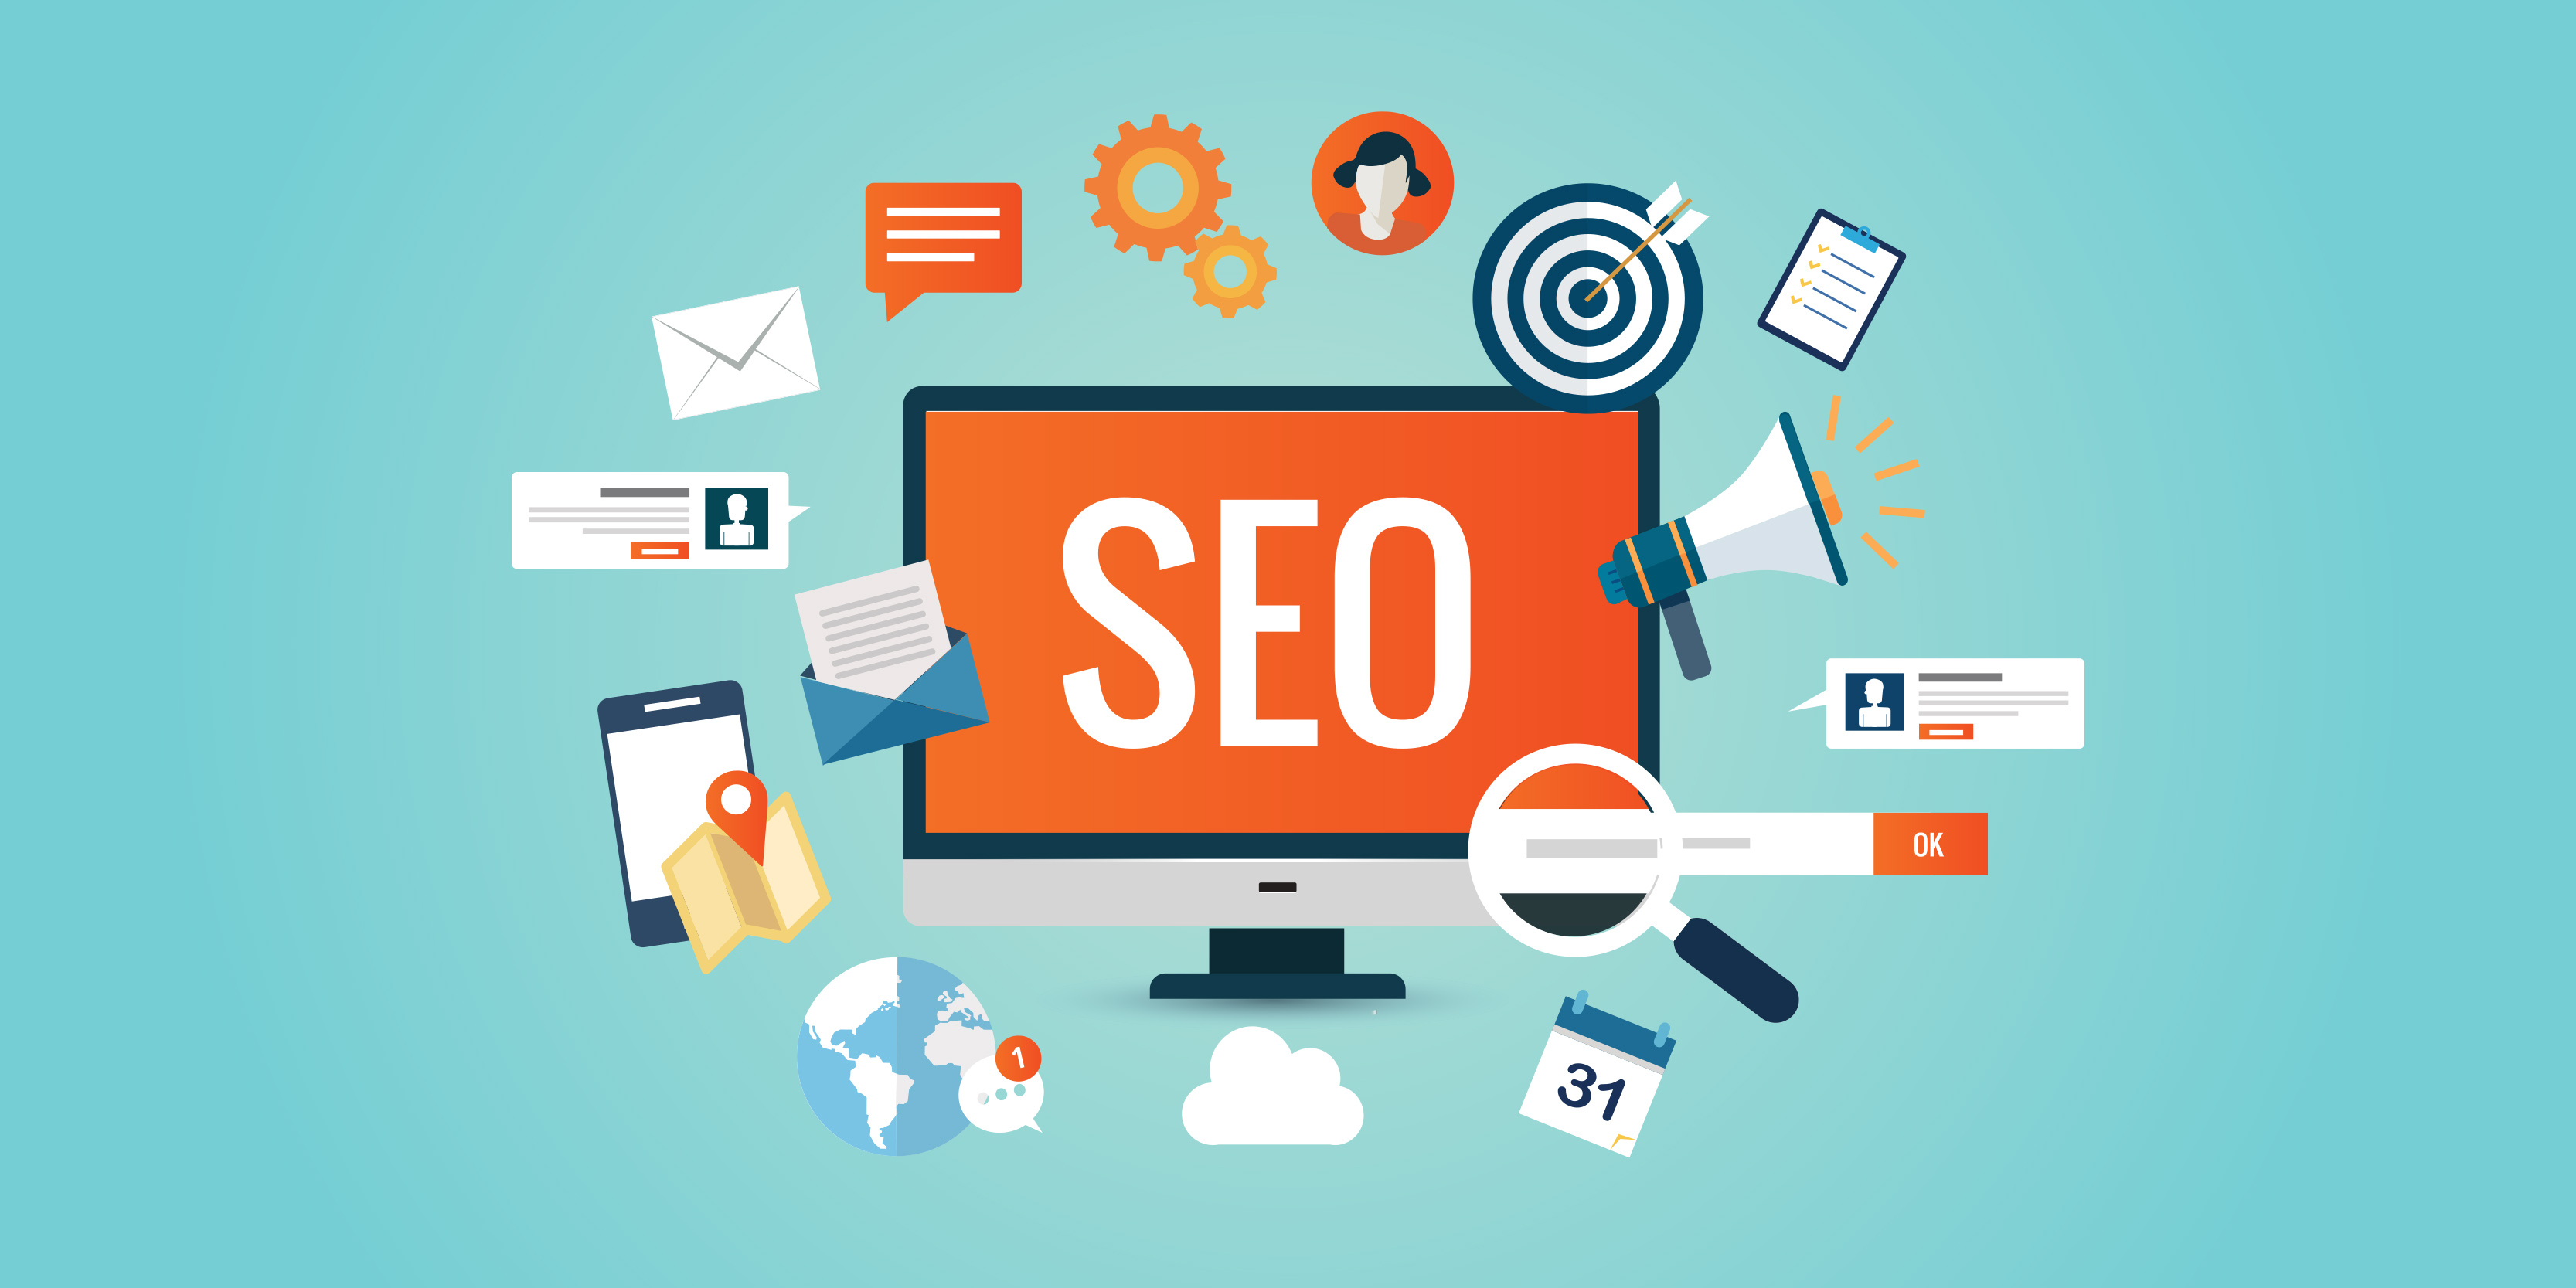 7 Benefits of Common SEO Best Practices